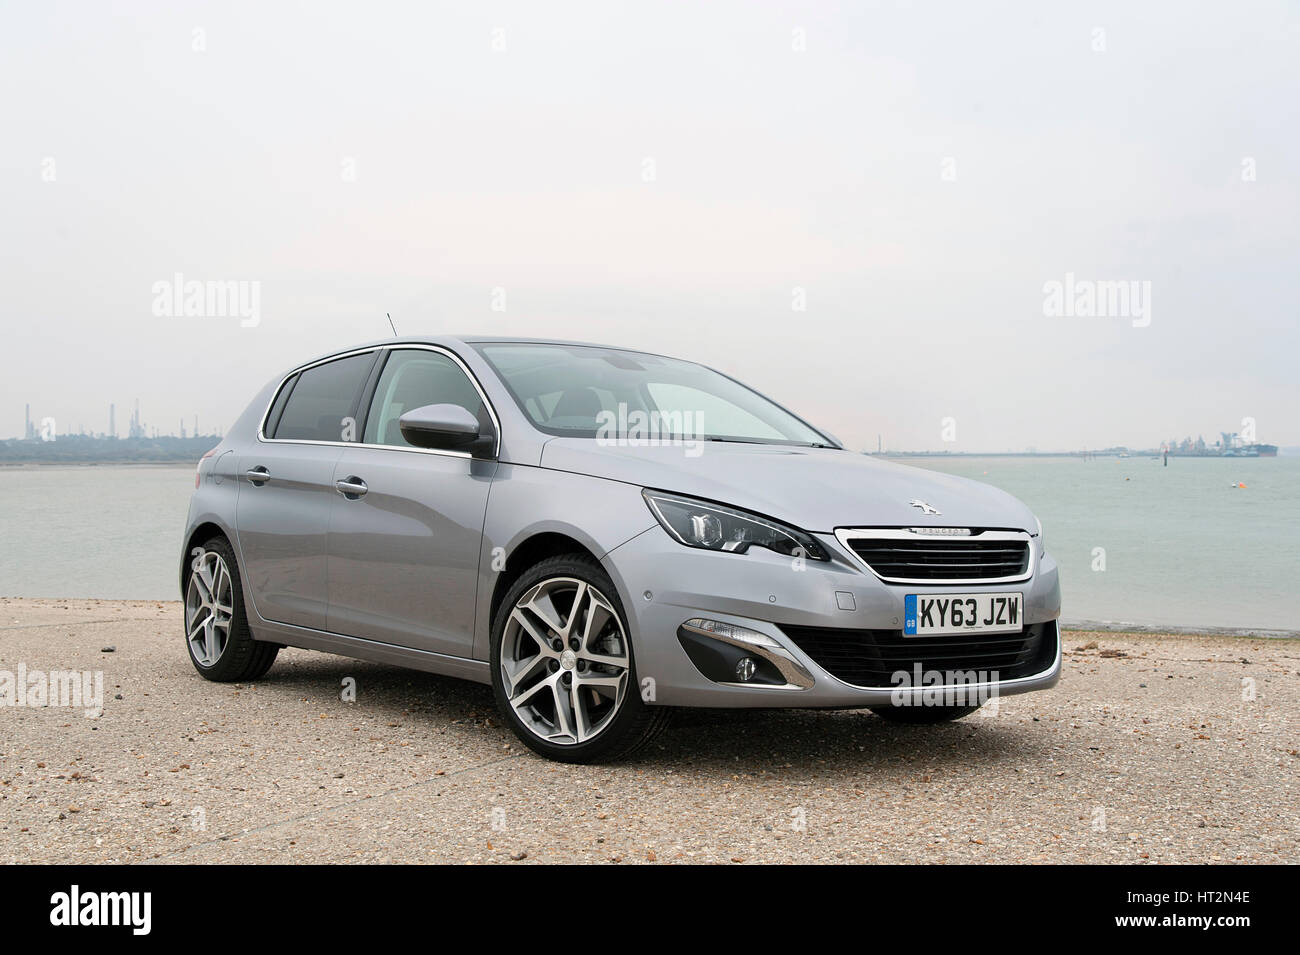 peugeot 308 stock photos peugeot 308 stock images alamy. Black Bedroom Furniture Sets. Home Design Ideas